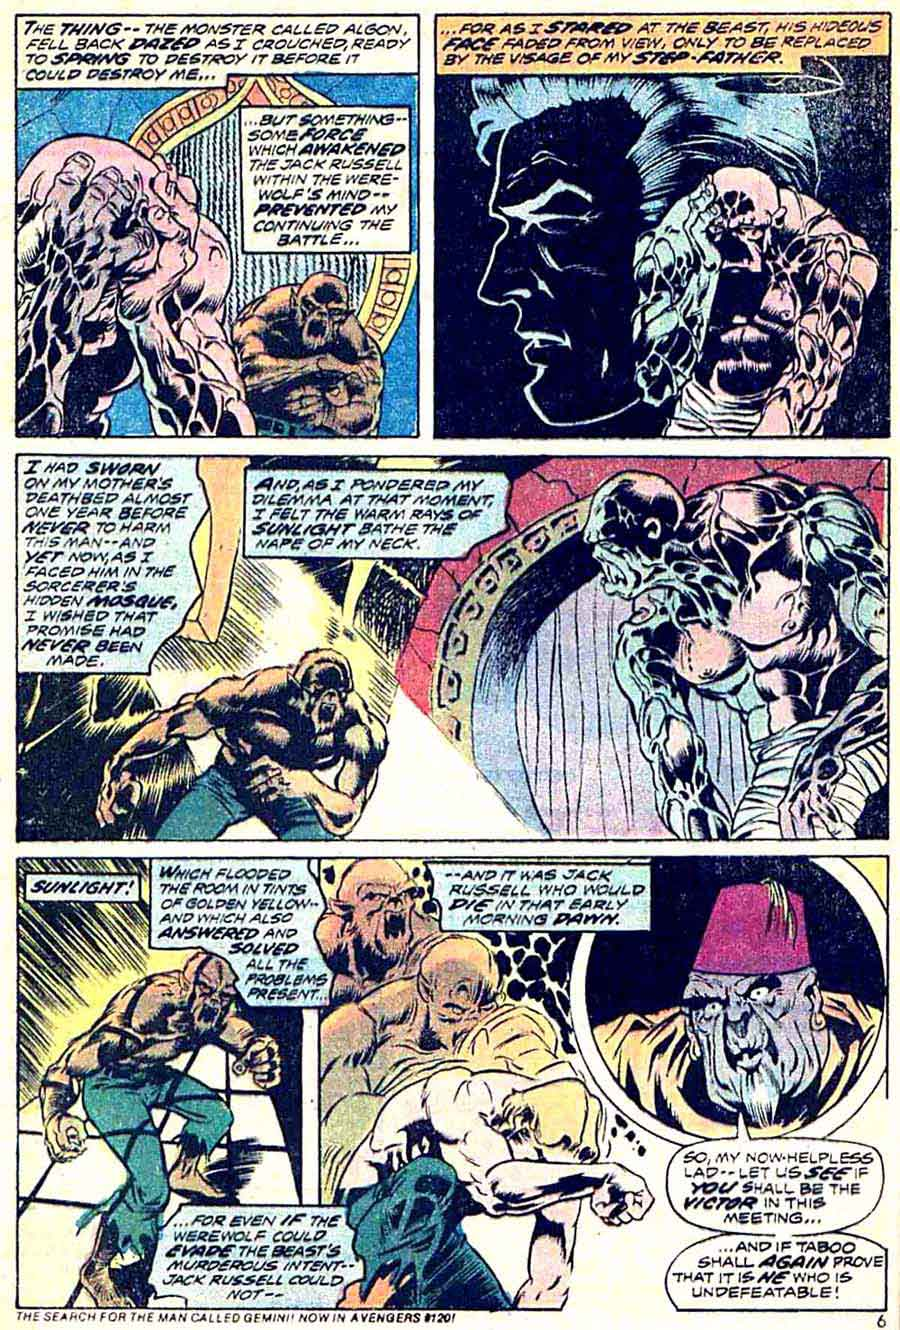 Werewolf by Night v1 #14 1970s marvel comic book page art by Mike Ploog